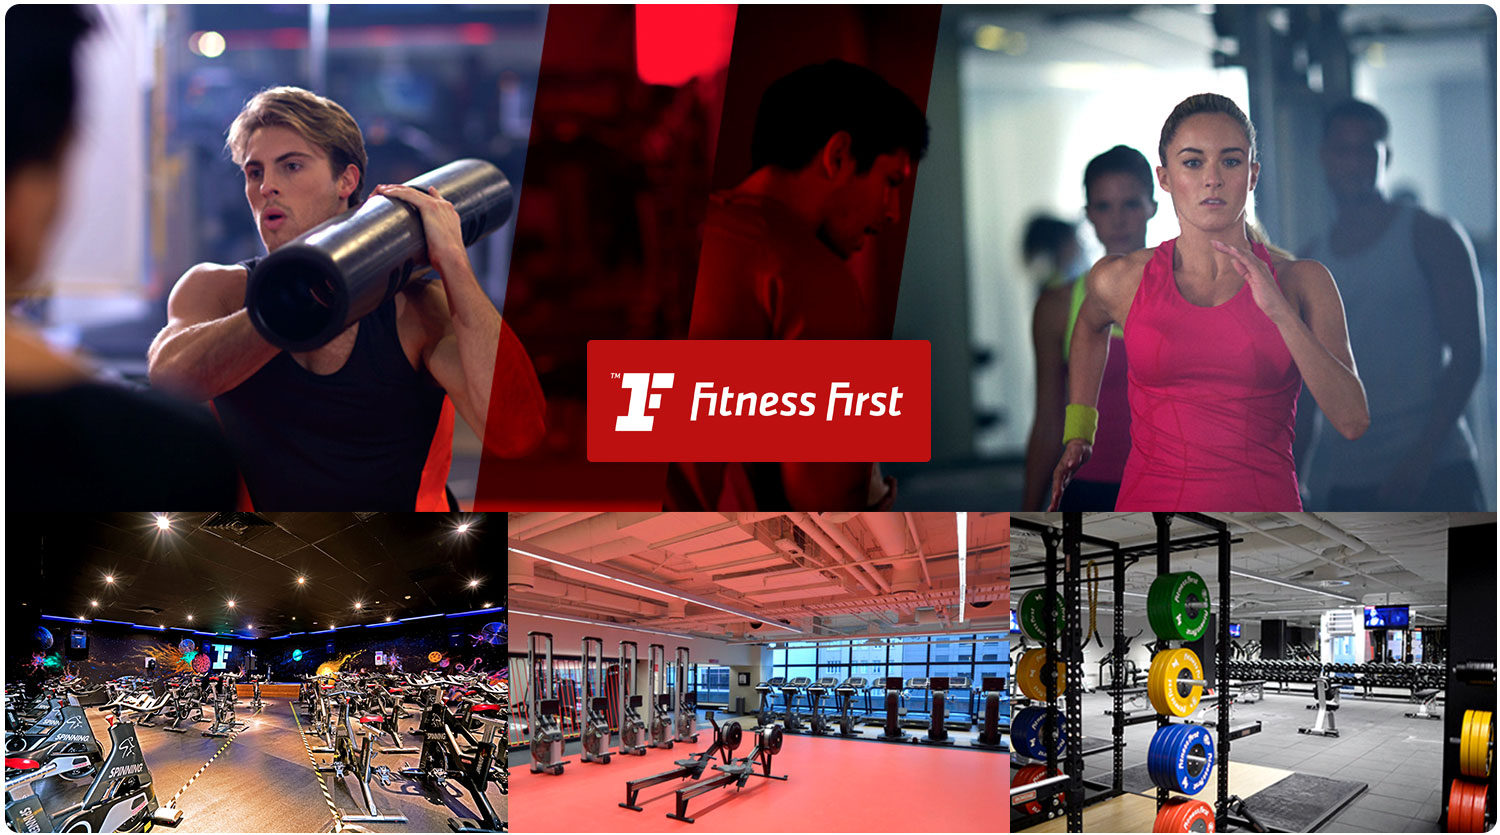 Start your Fitness Journey with Fitness First with only $14.95 for 14 days at Fitness First Parramatta NSW. Experience our first class gym and freestyle classes inc. Zumba, Pilates, Yoga, HIIT, Boxing, Les Mills and more. Take the first step with Fitness First Parramatta NSW.